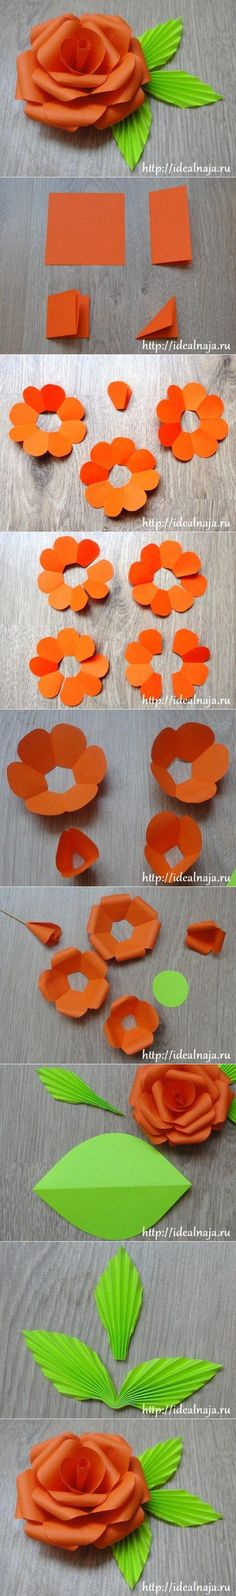 DIY Easy Paper Rose DIY Projects